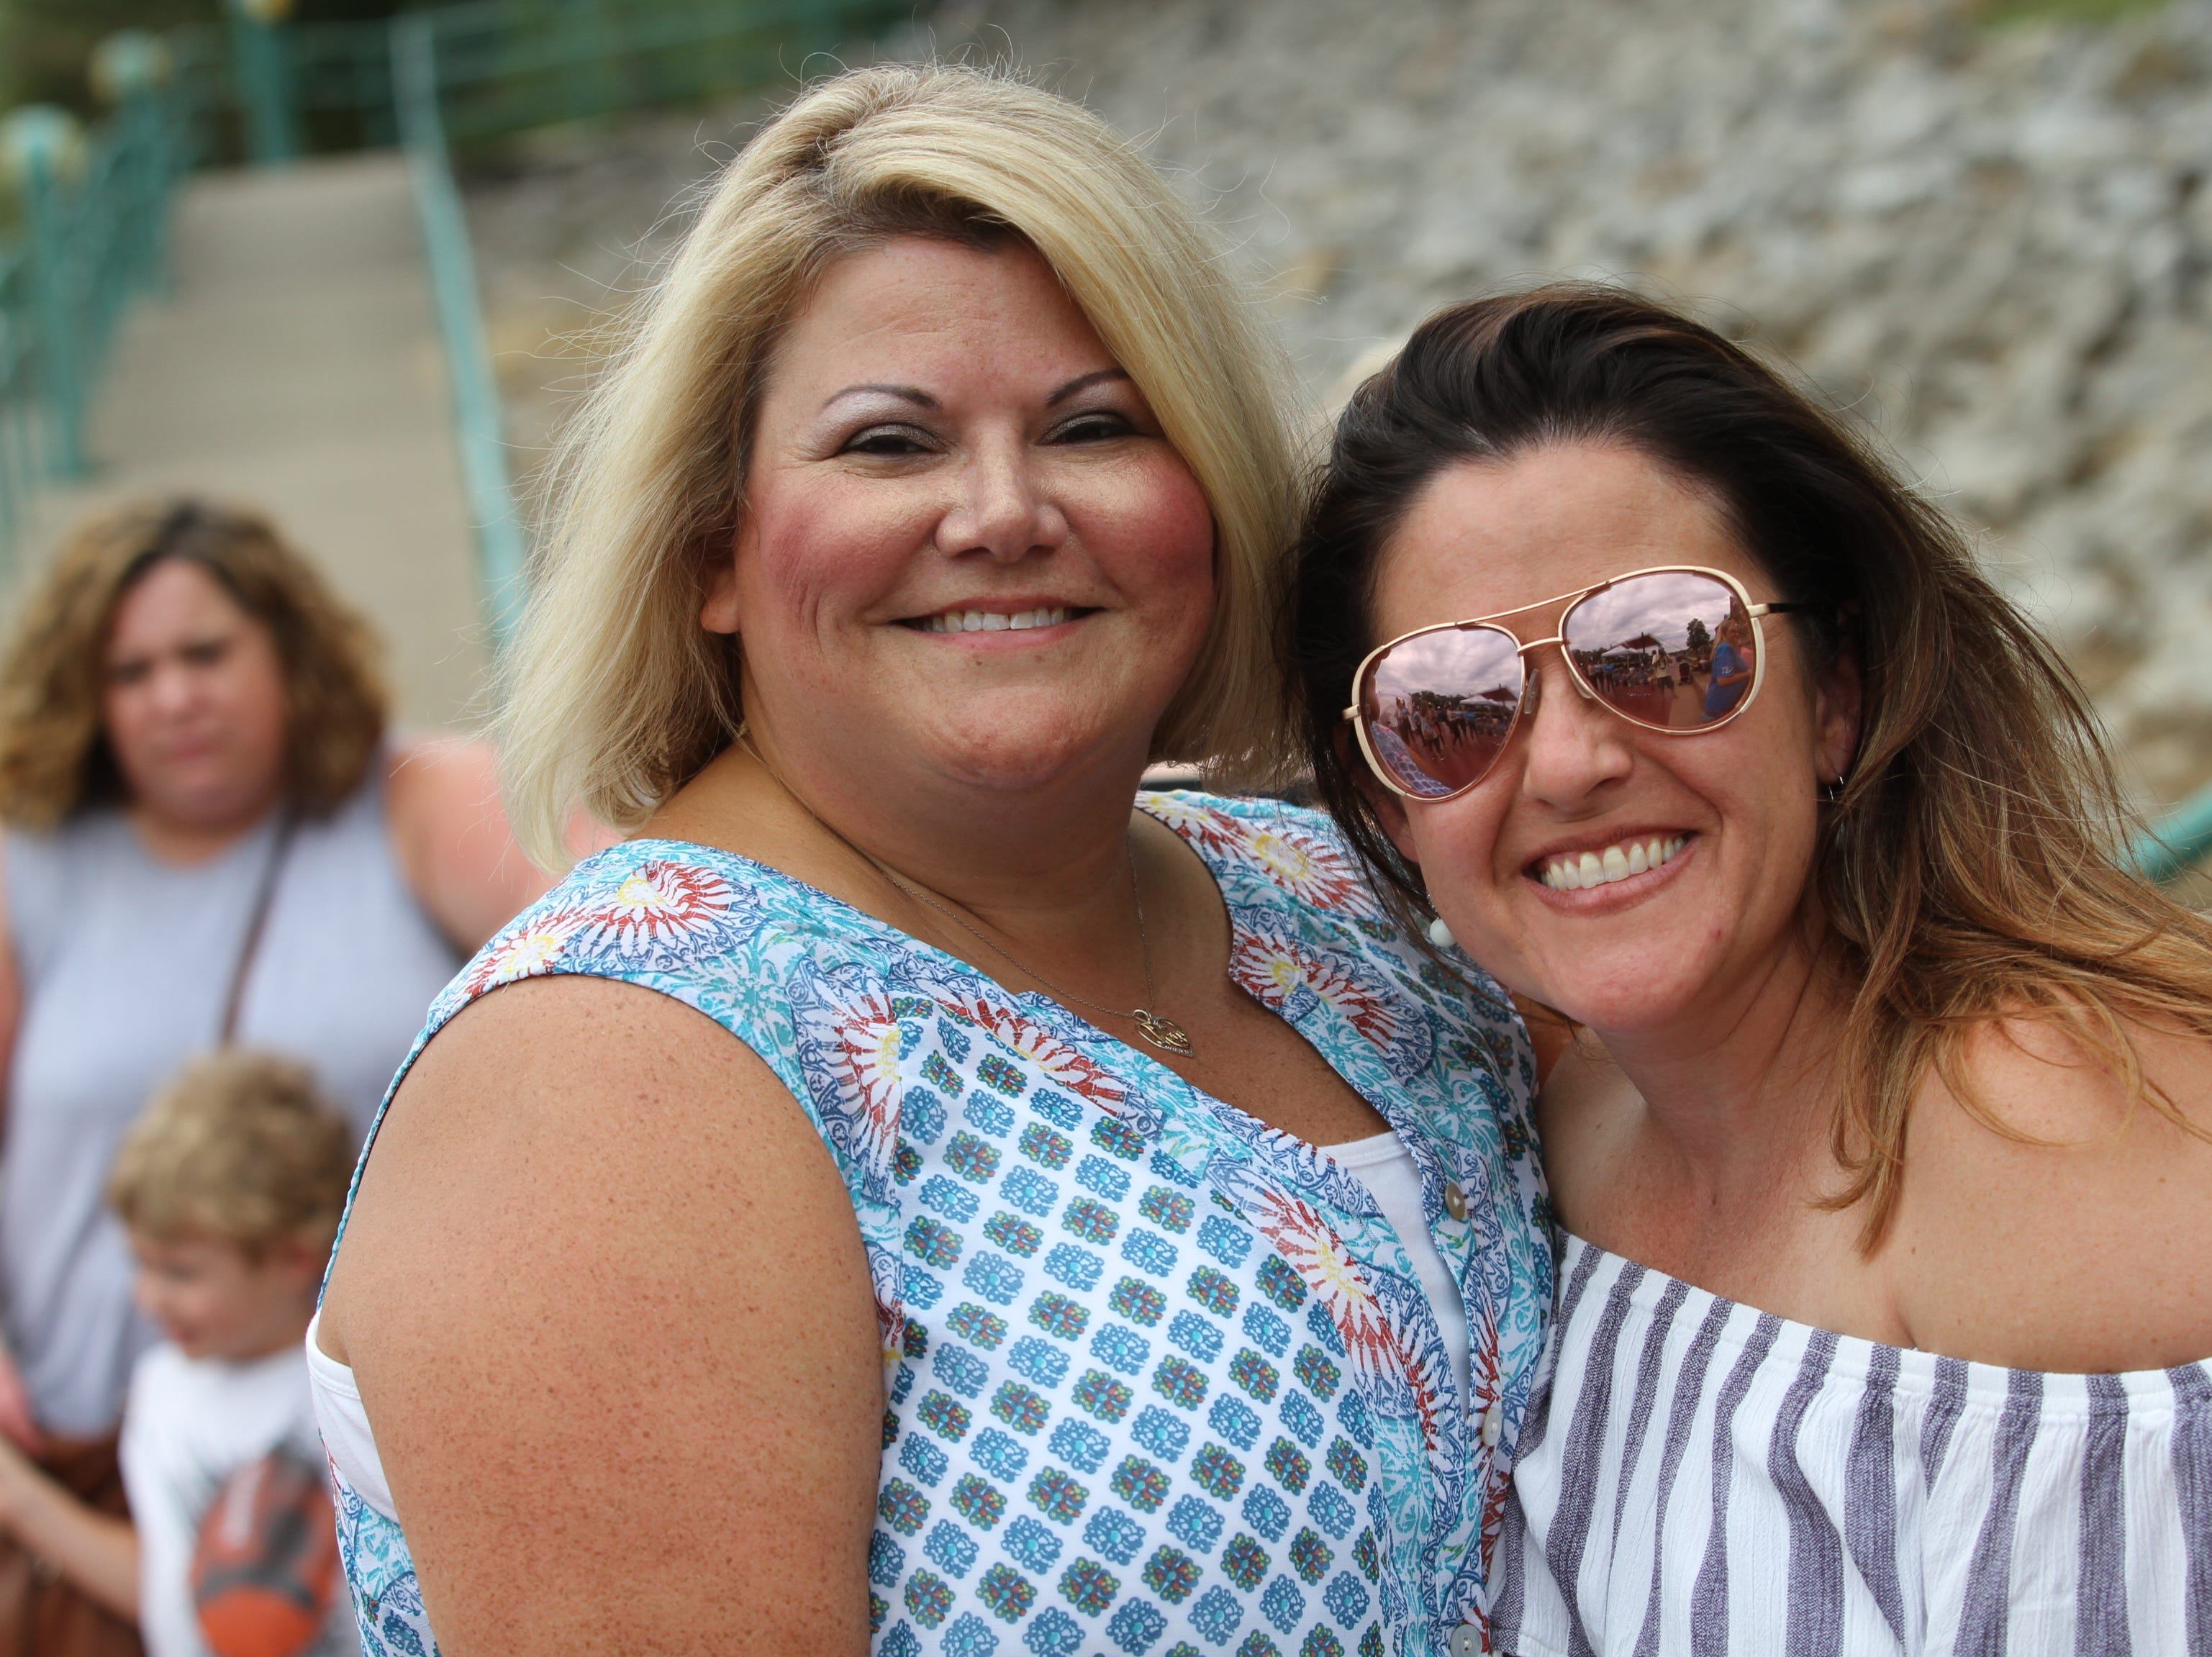 Angelia Butts and Jodie Wilkinson at Clarksville Riverfest on Saturday, Sept. 8, 2018.